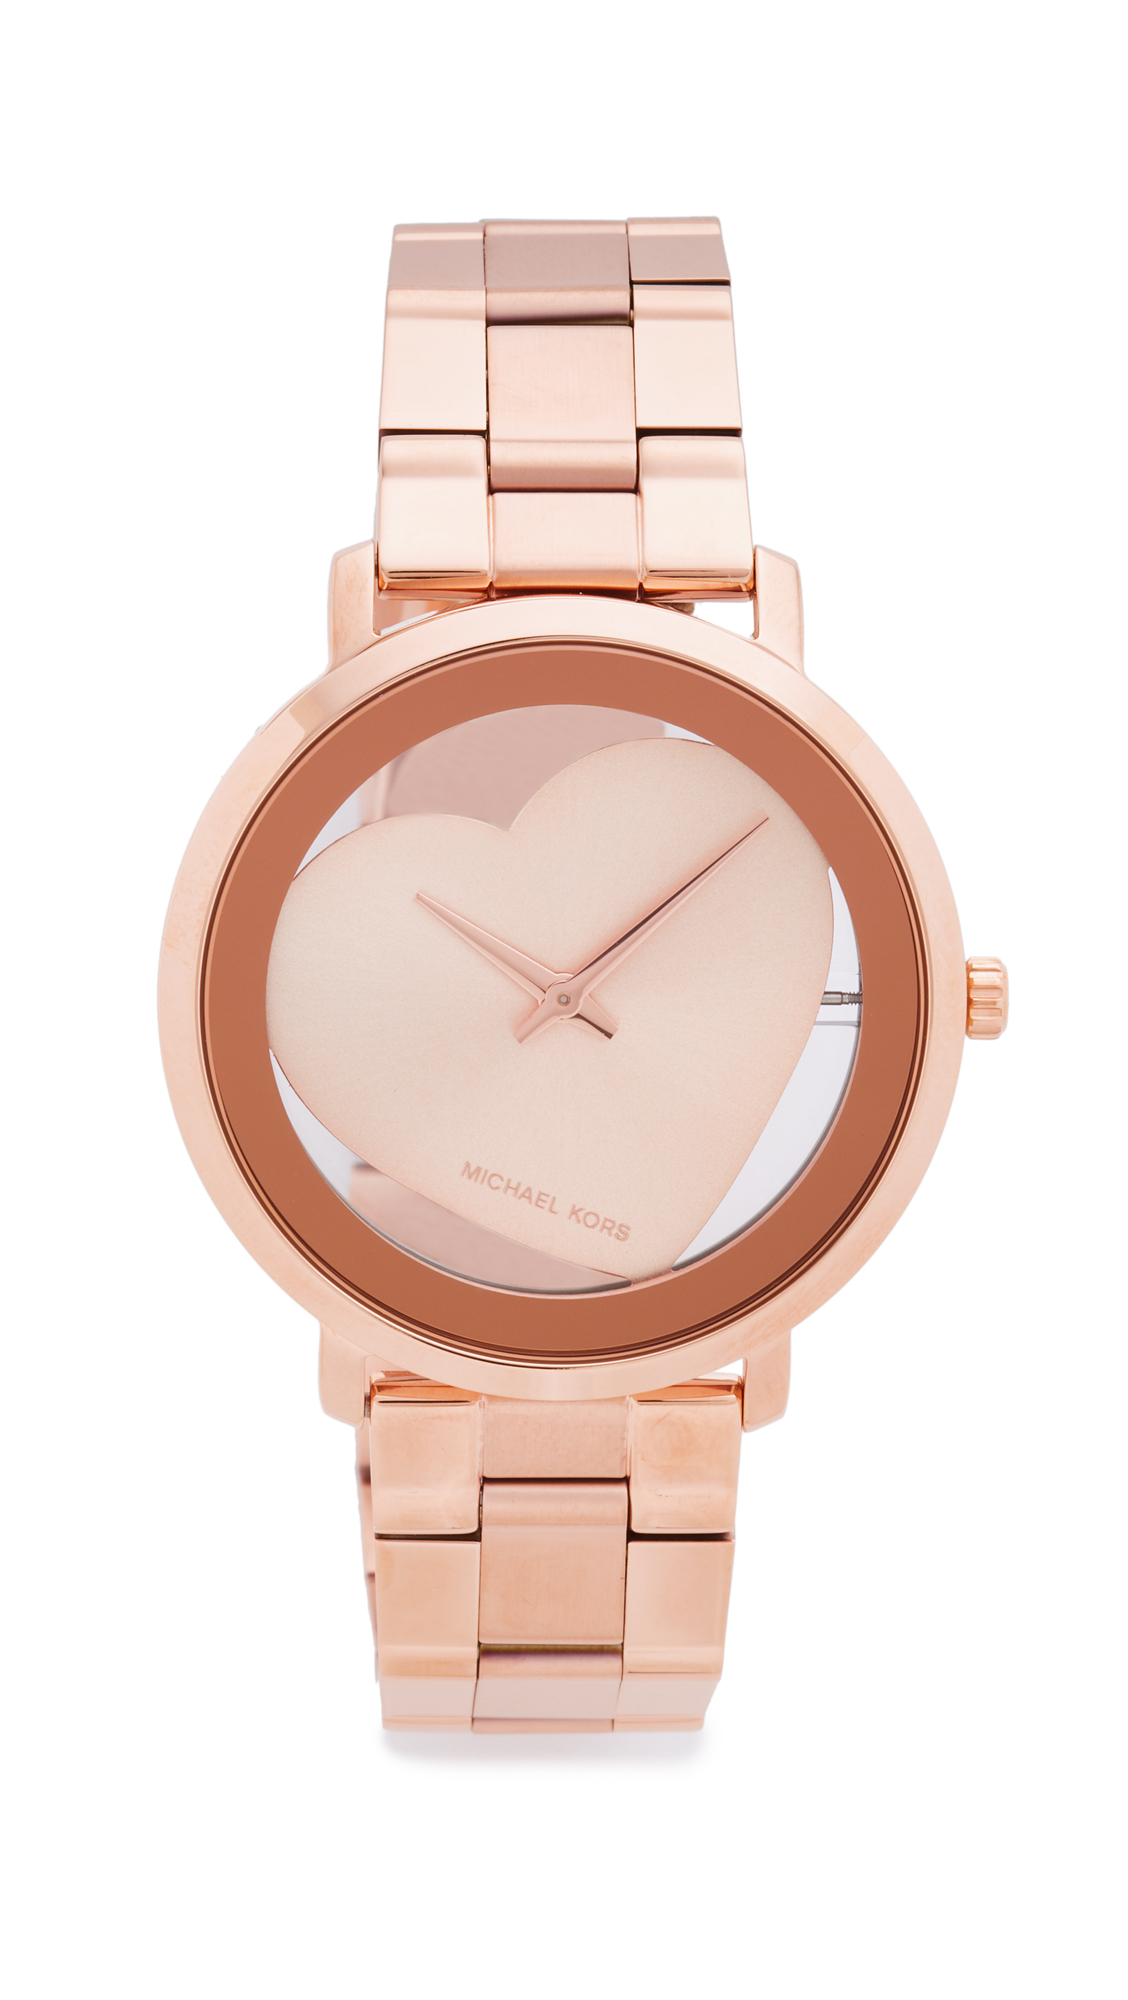 michael kors female michael kors jaryn heart watch rose gold